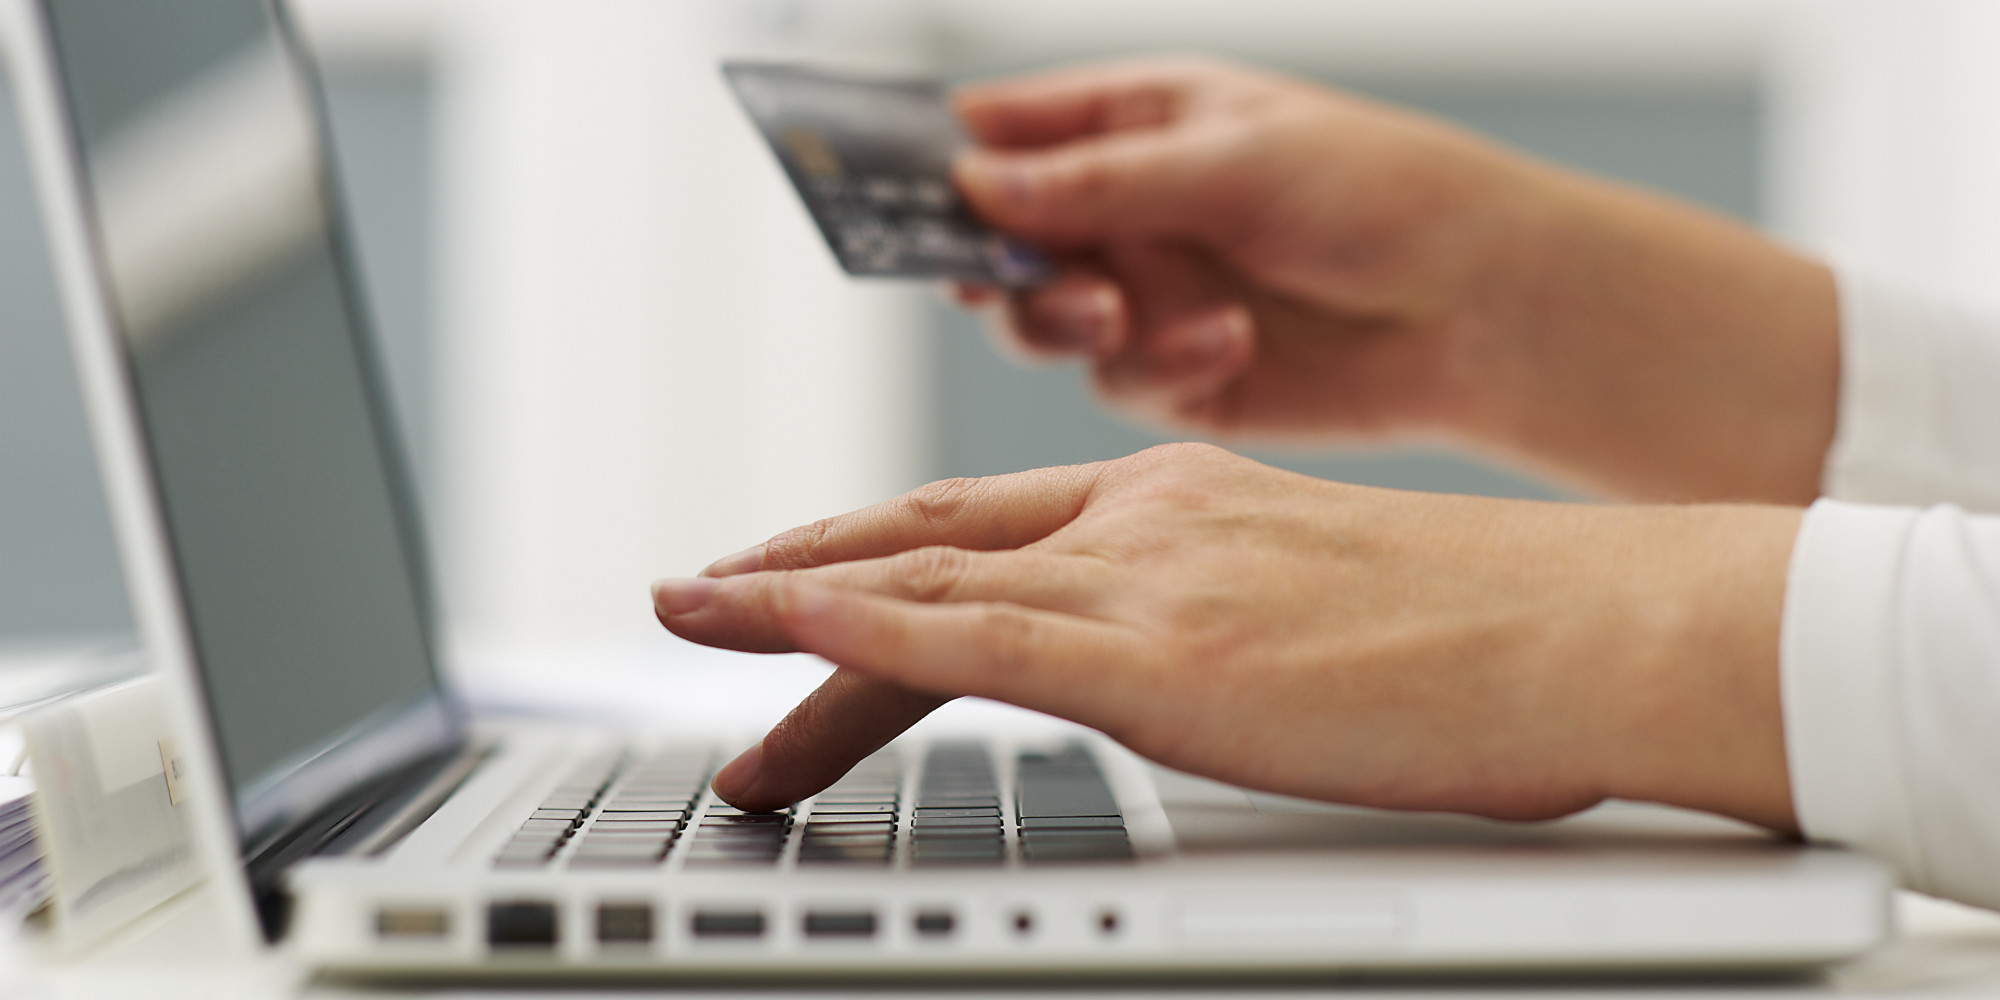 some hands buying online with a credit card